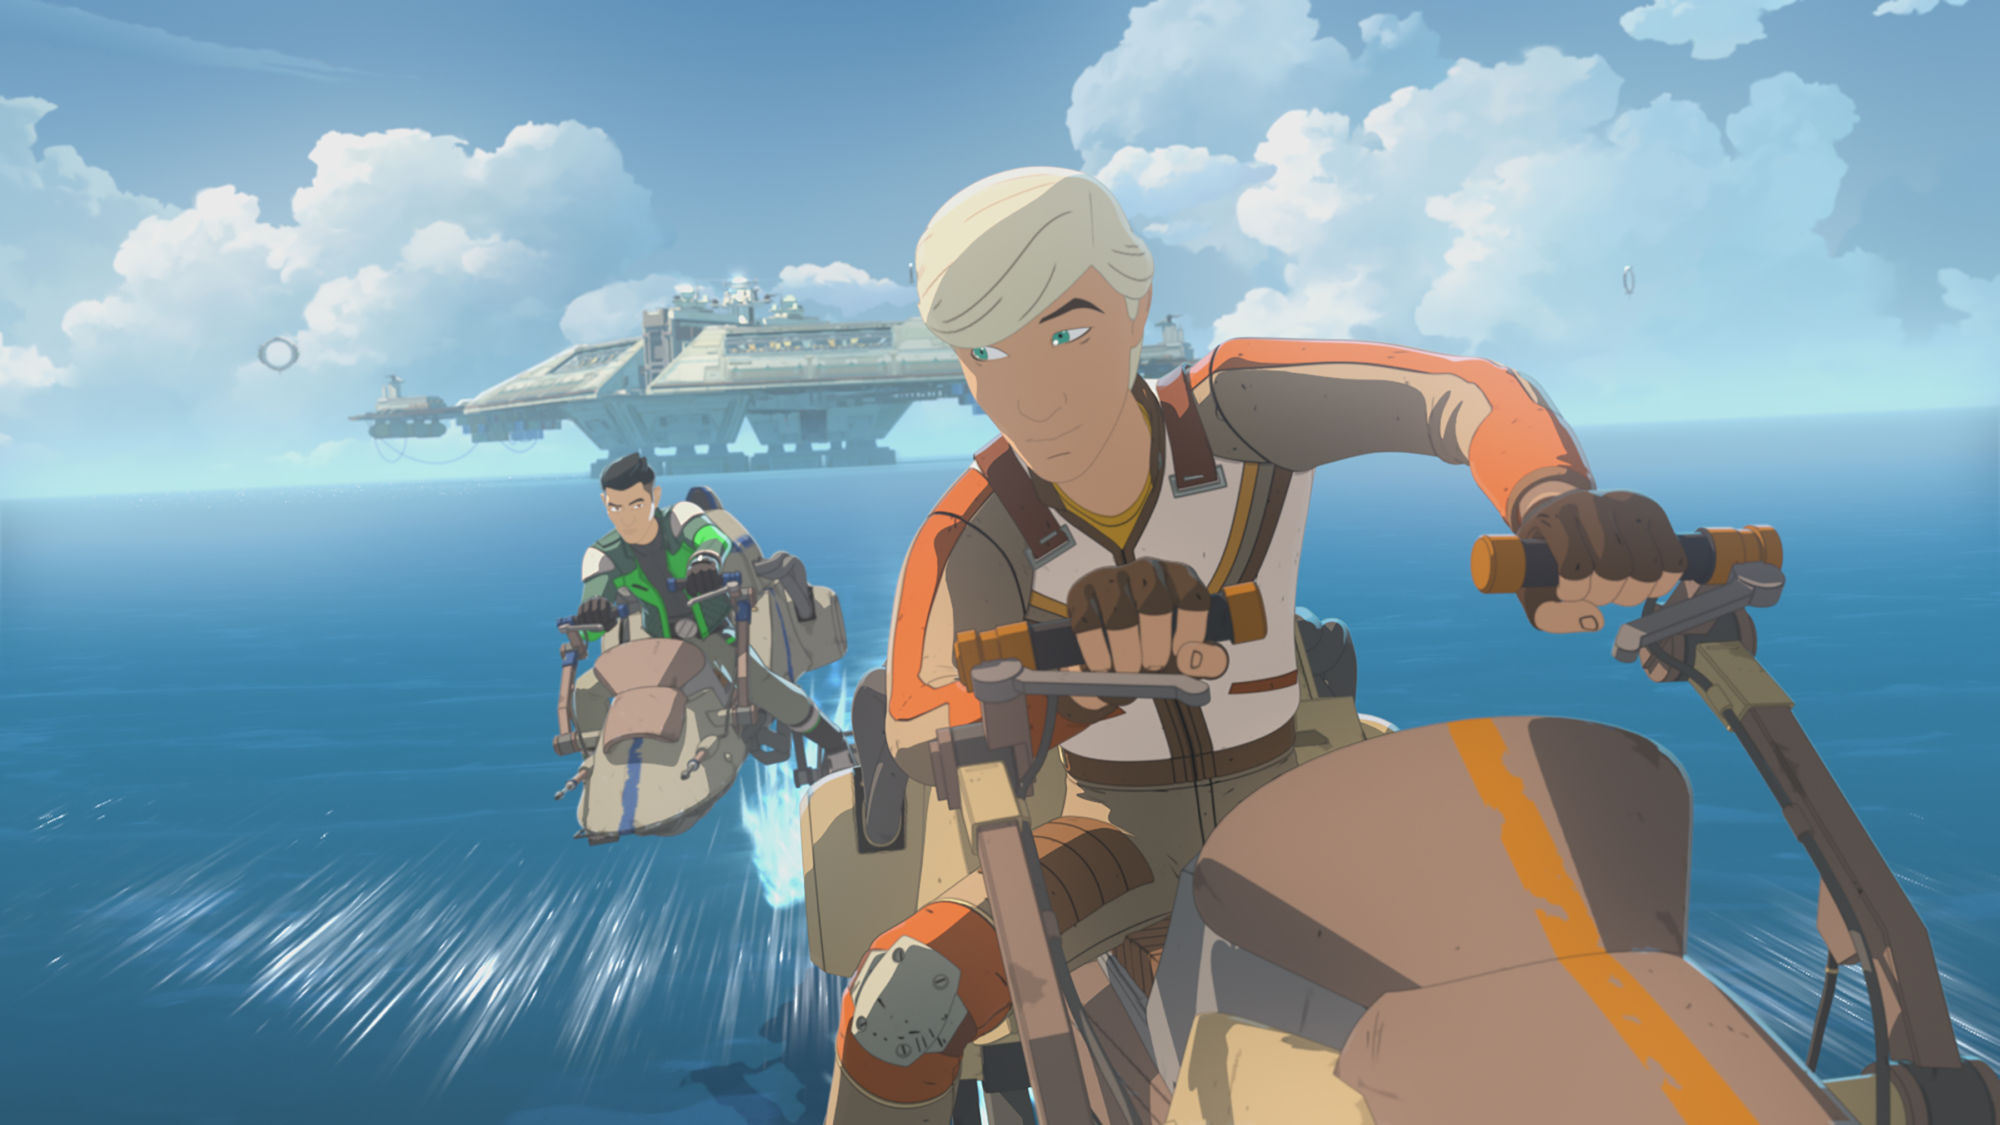 Star Wars Resistance Adds Elijah Wood to Cast in Sunday's